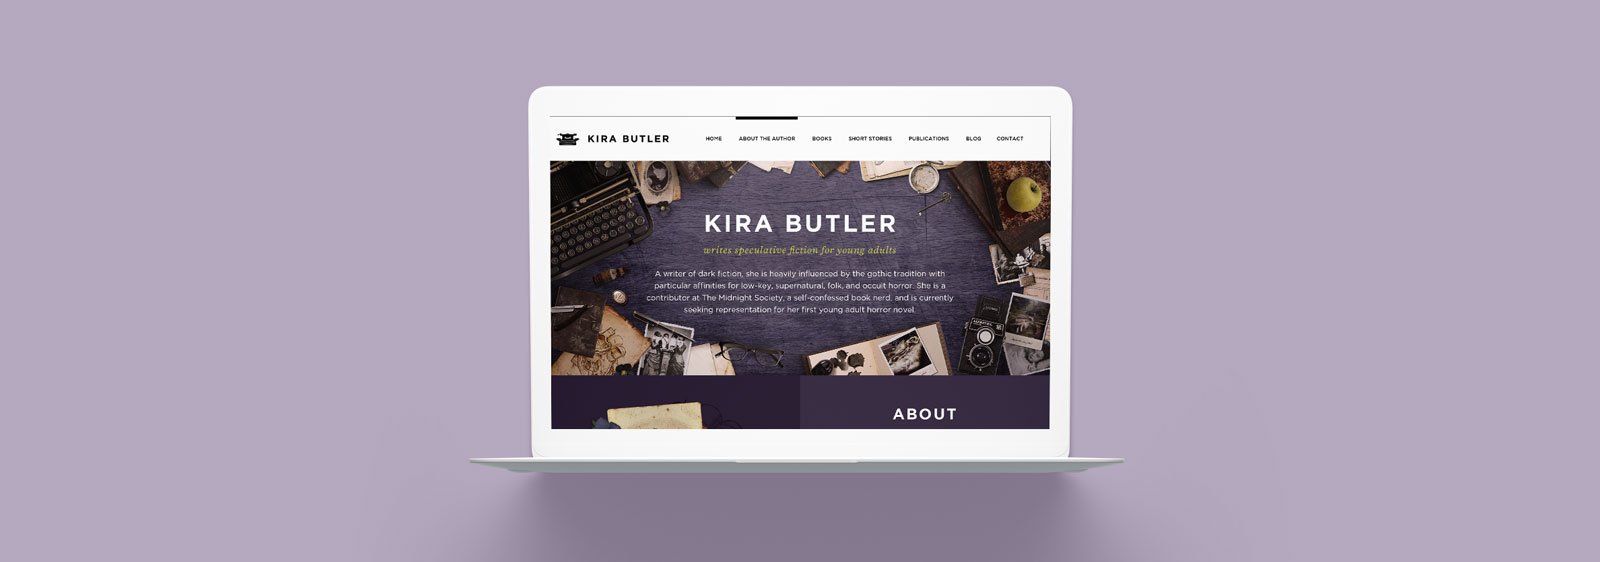 KiraButler.com website designed by Noisy Ghost Co.